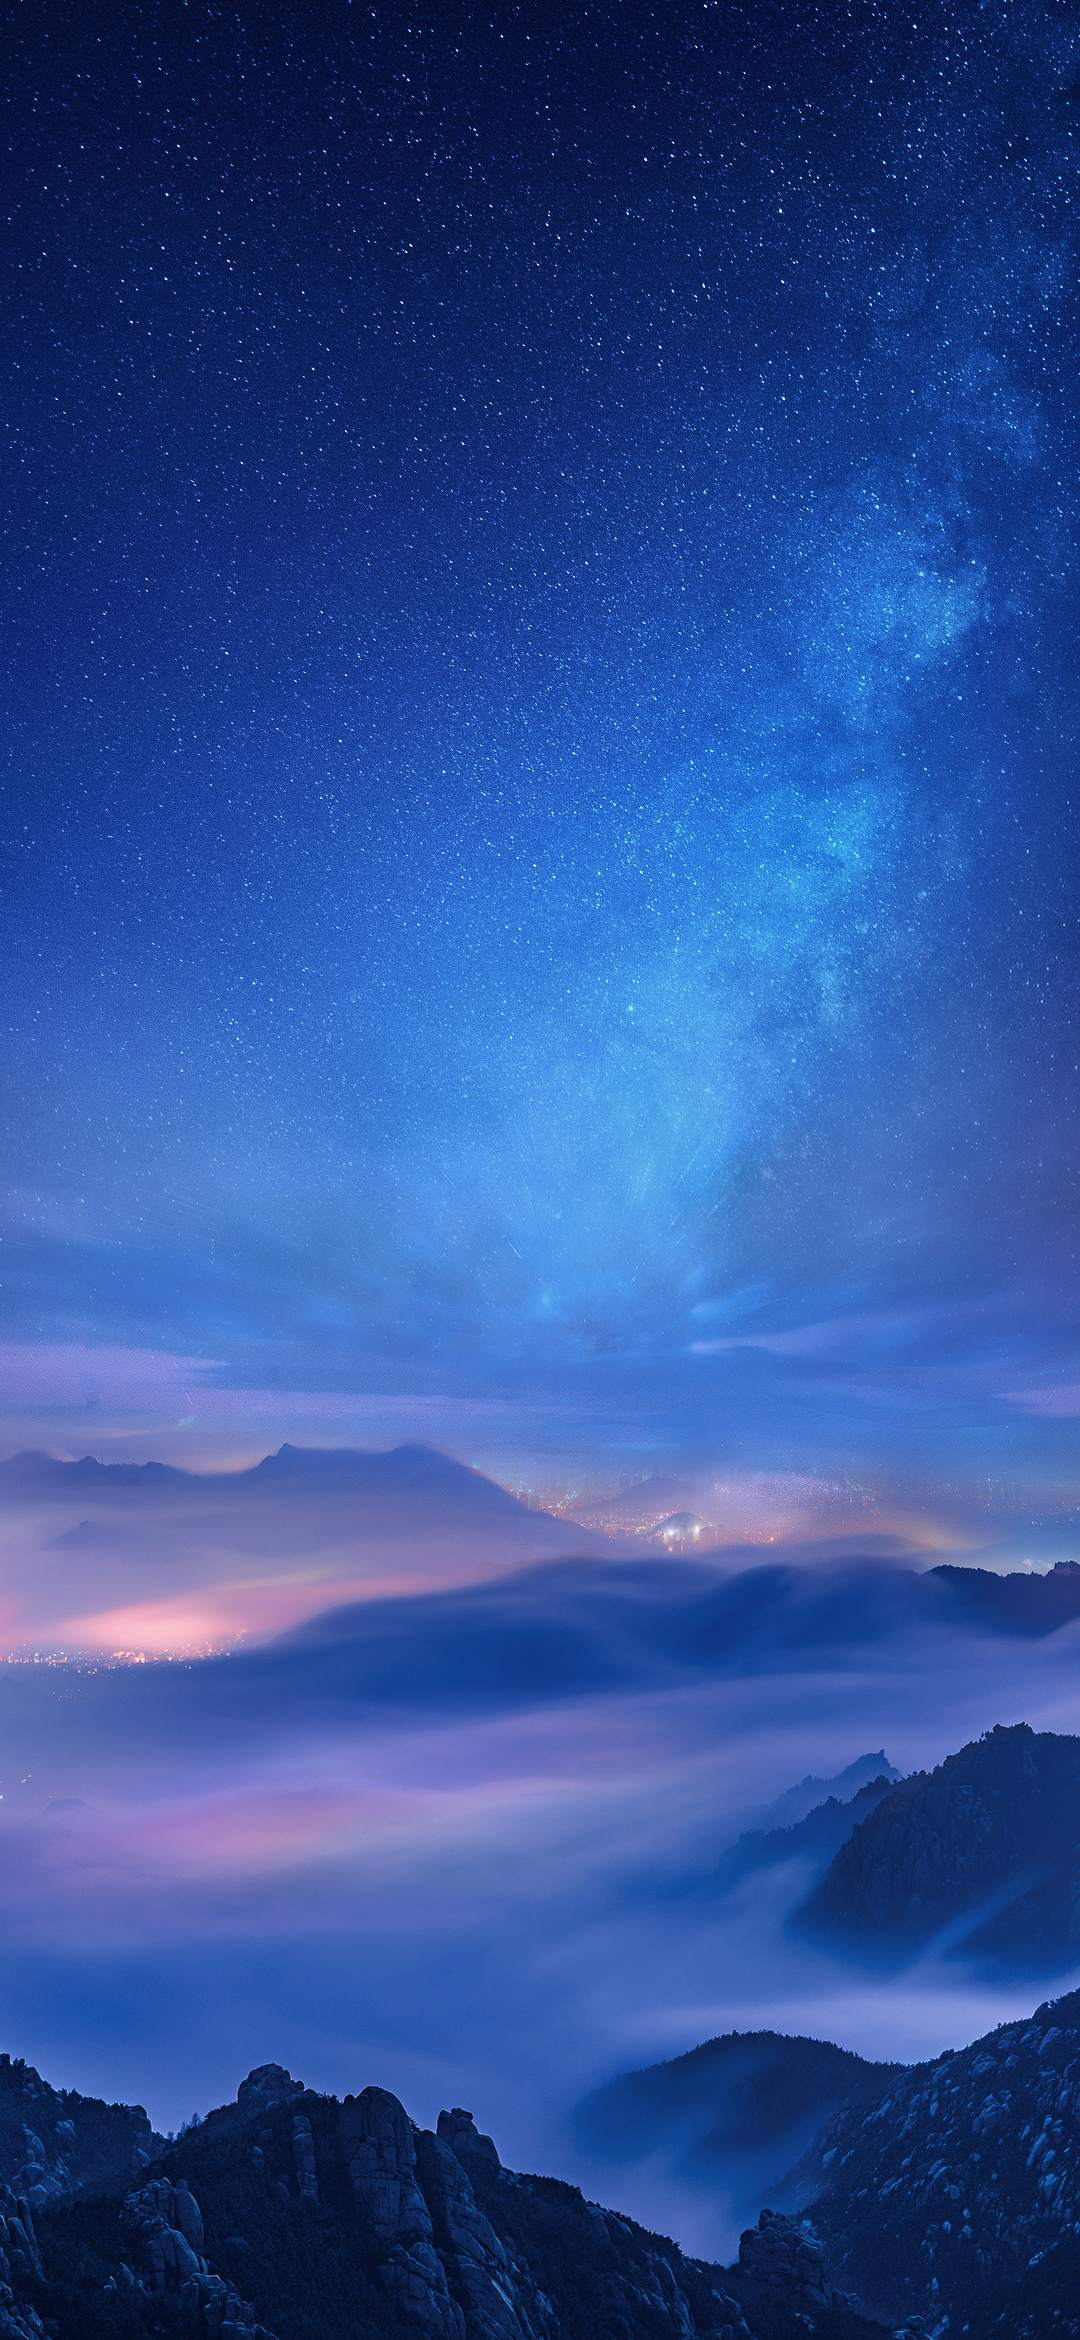 These Wallpapers Are Beautiful Wallpaper Mi Community